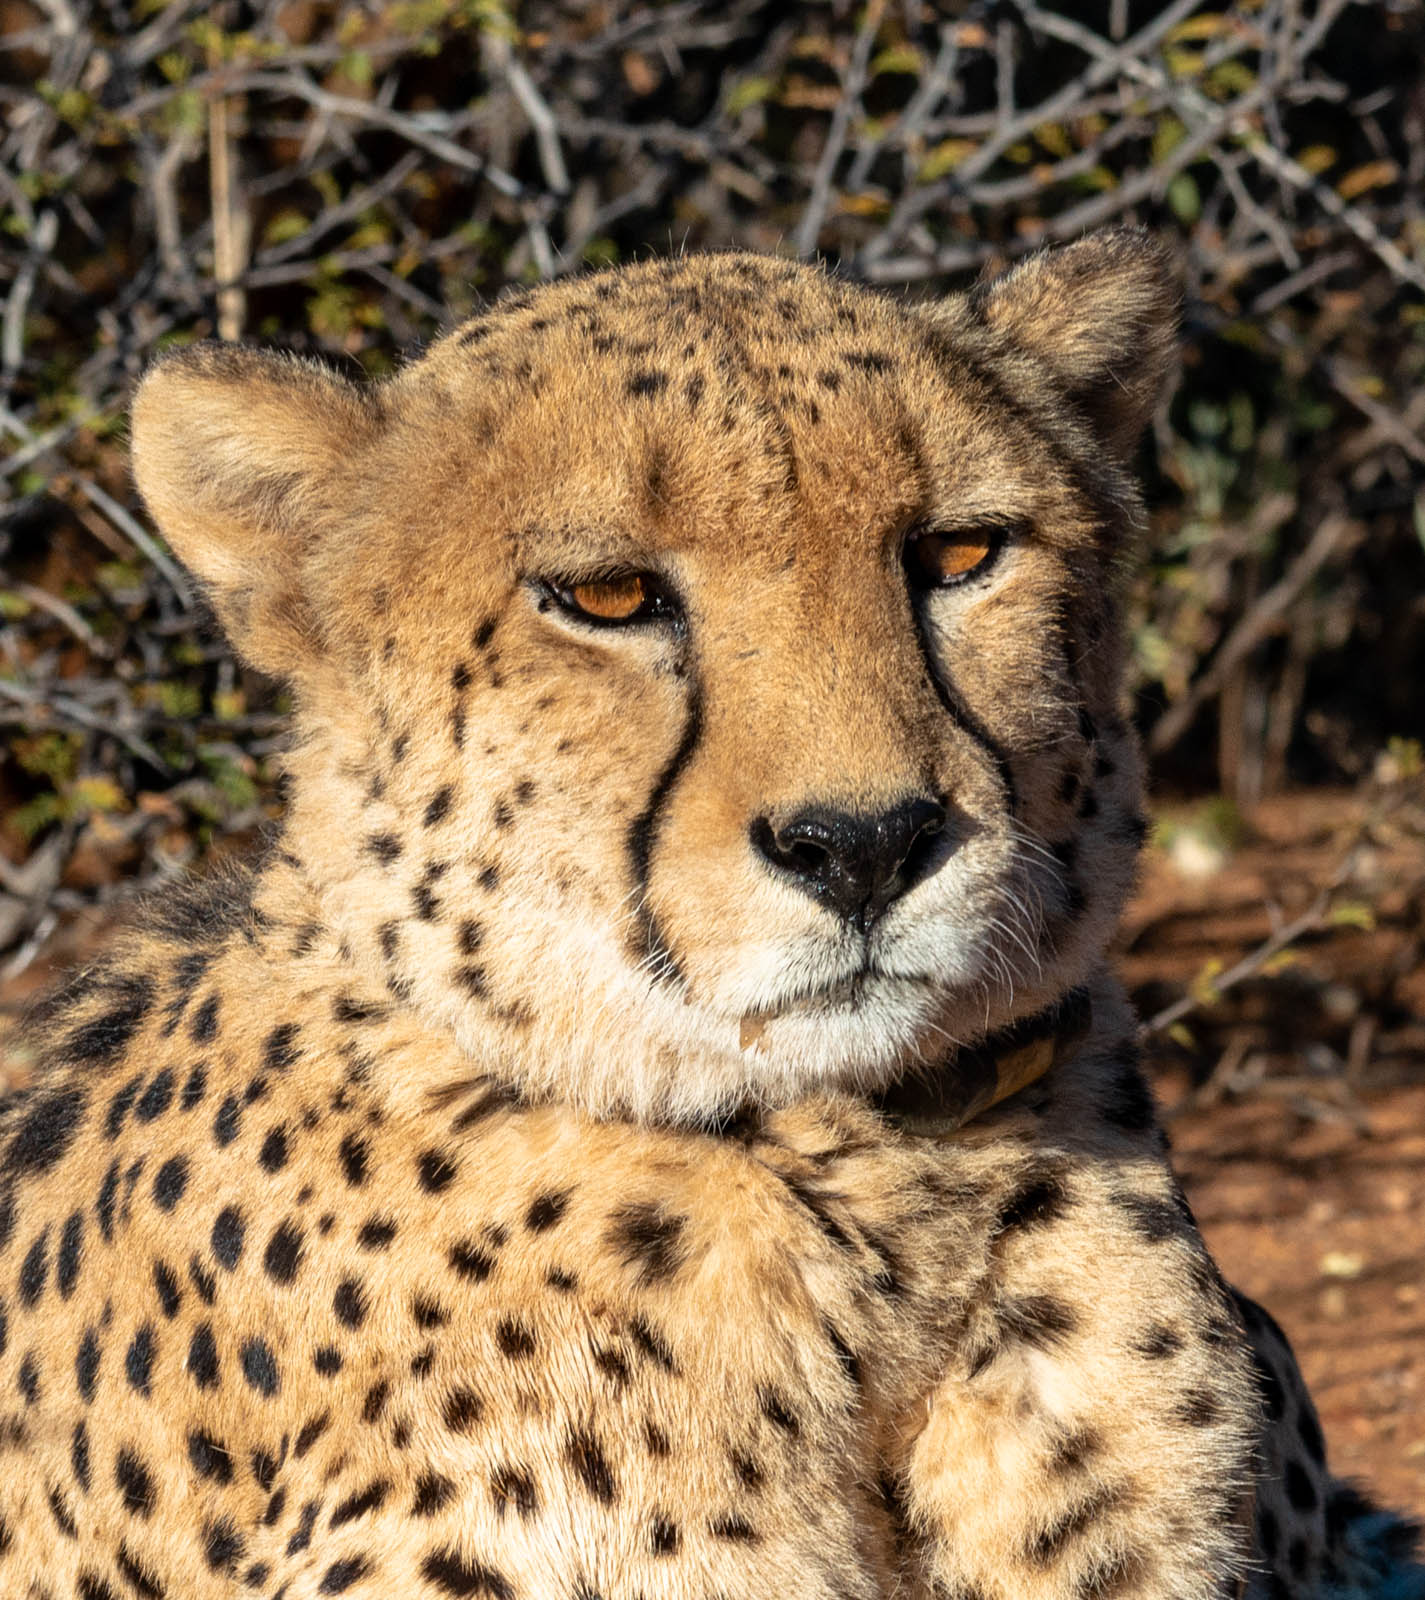 Namibia_okonjima cheetah head and shoulders-0121137.jpg